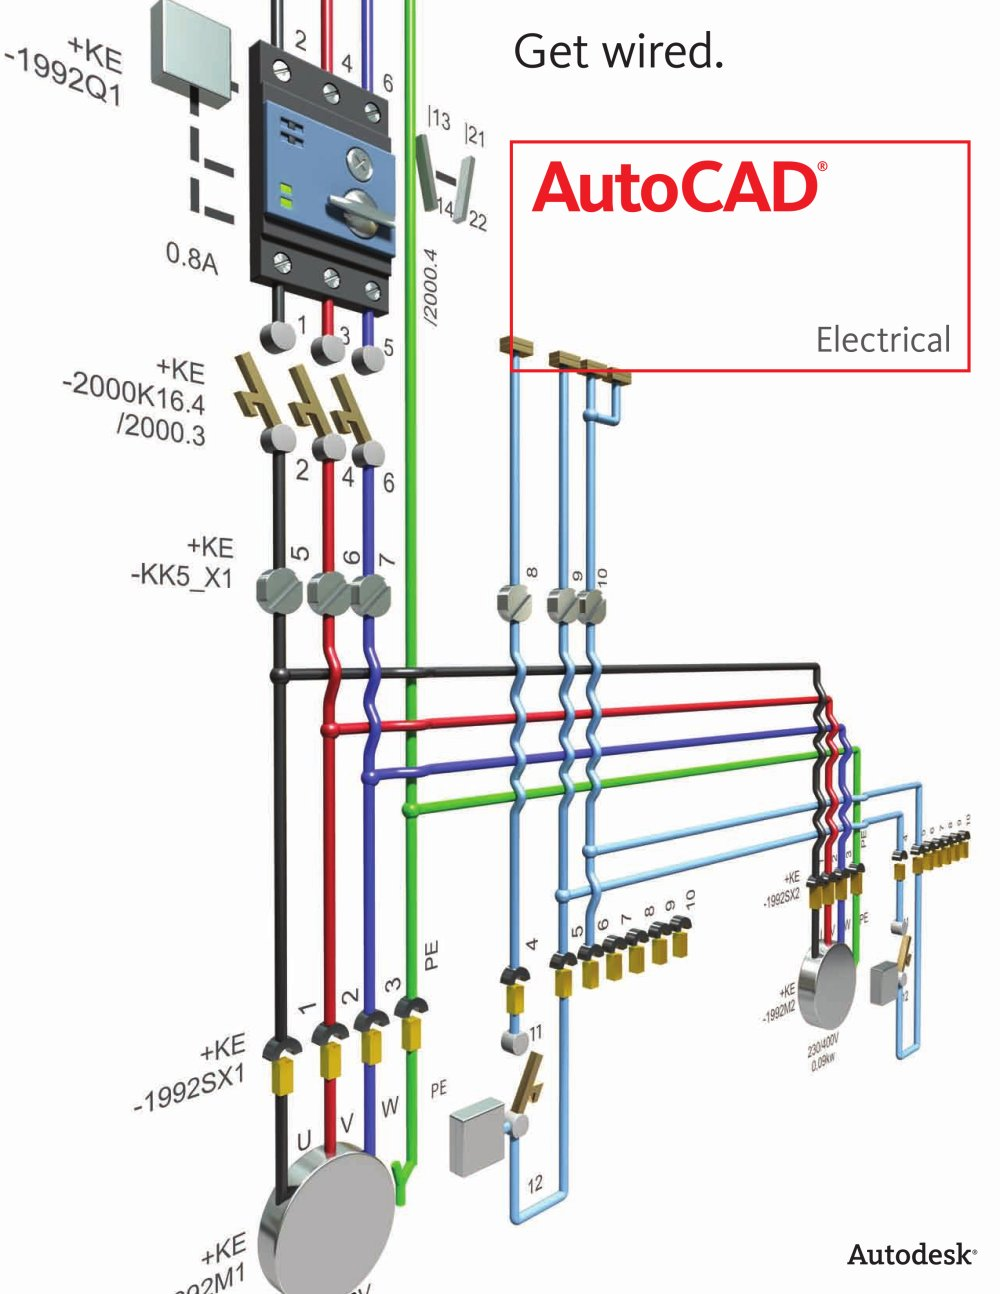 AutoCAD Electrical - 1 / 4 Pages